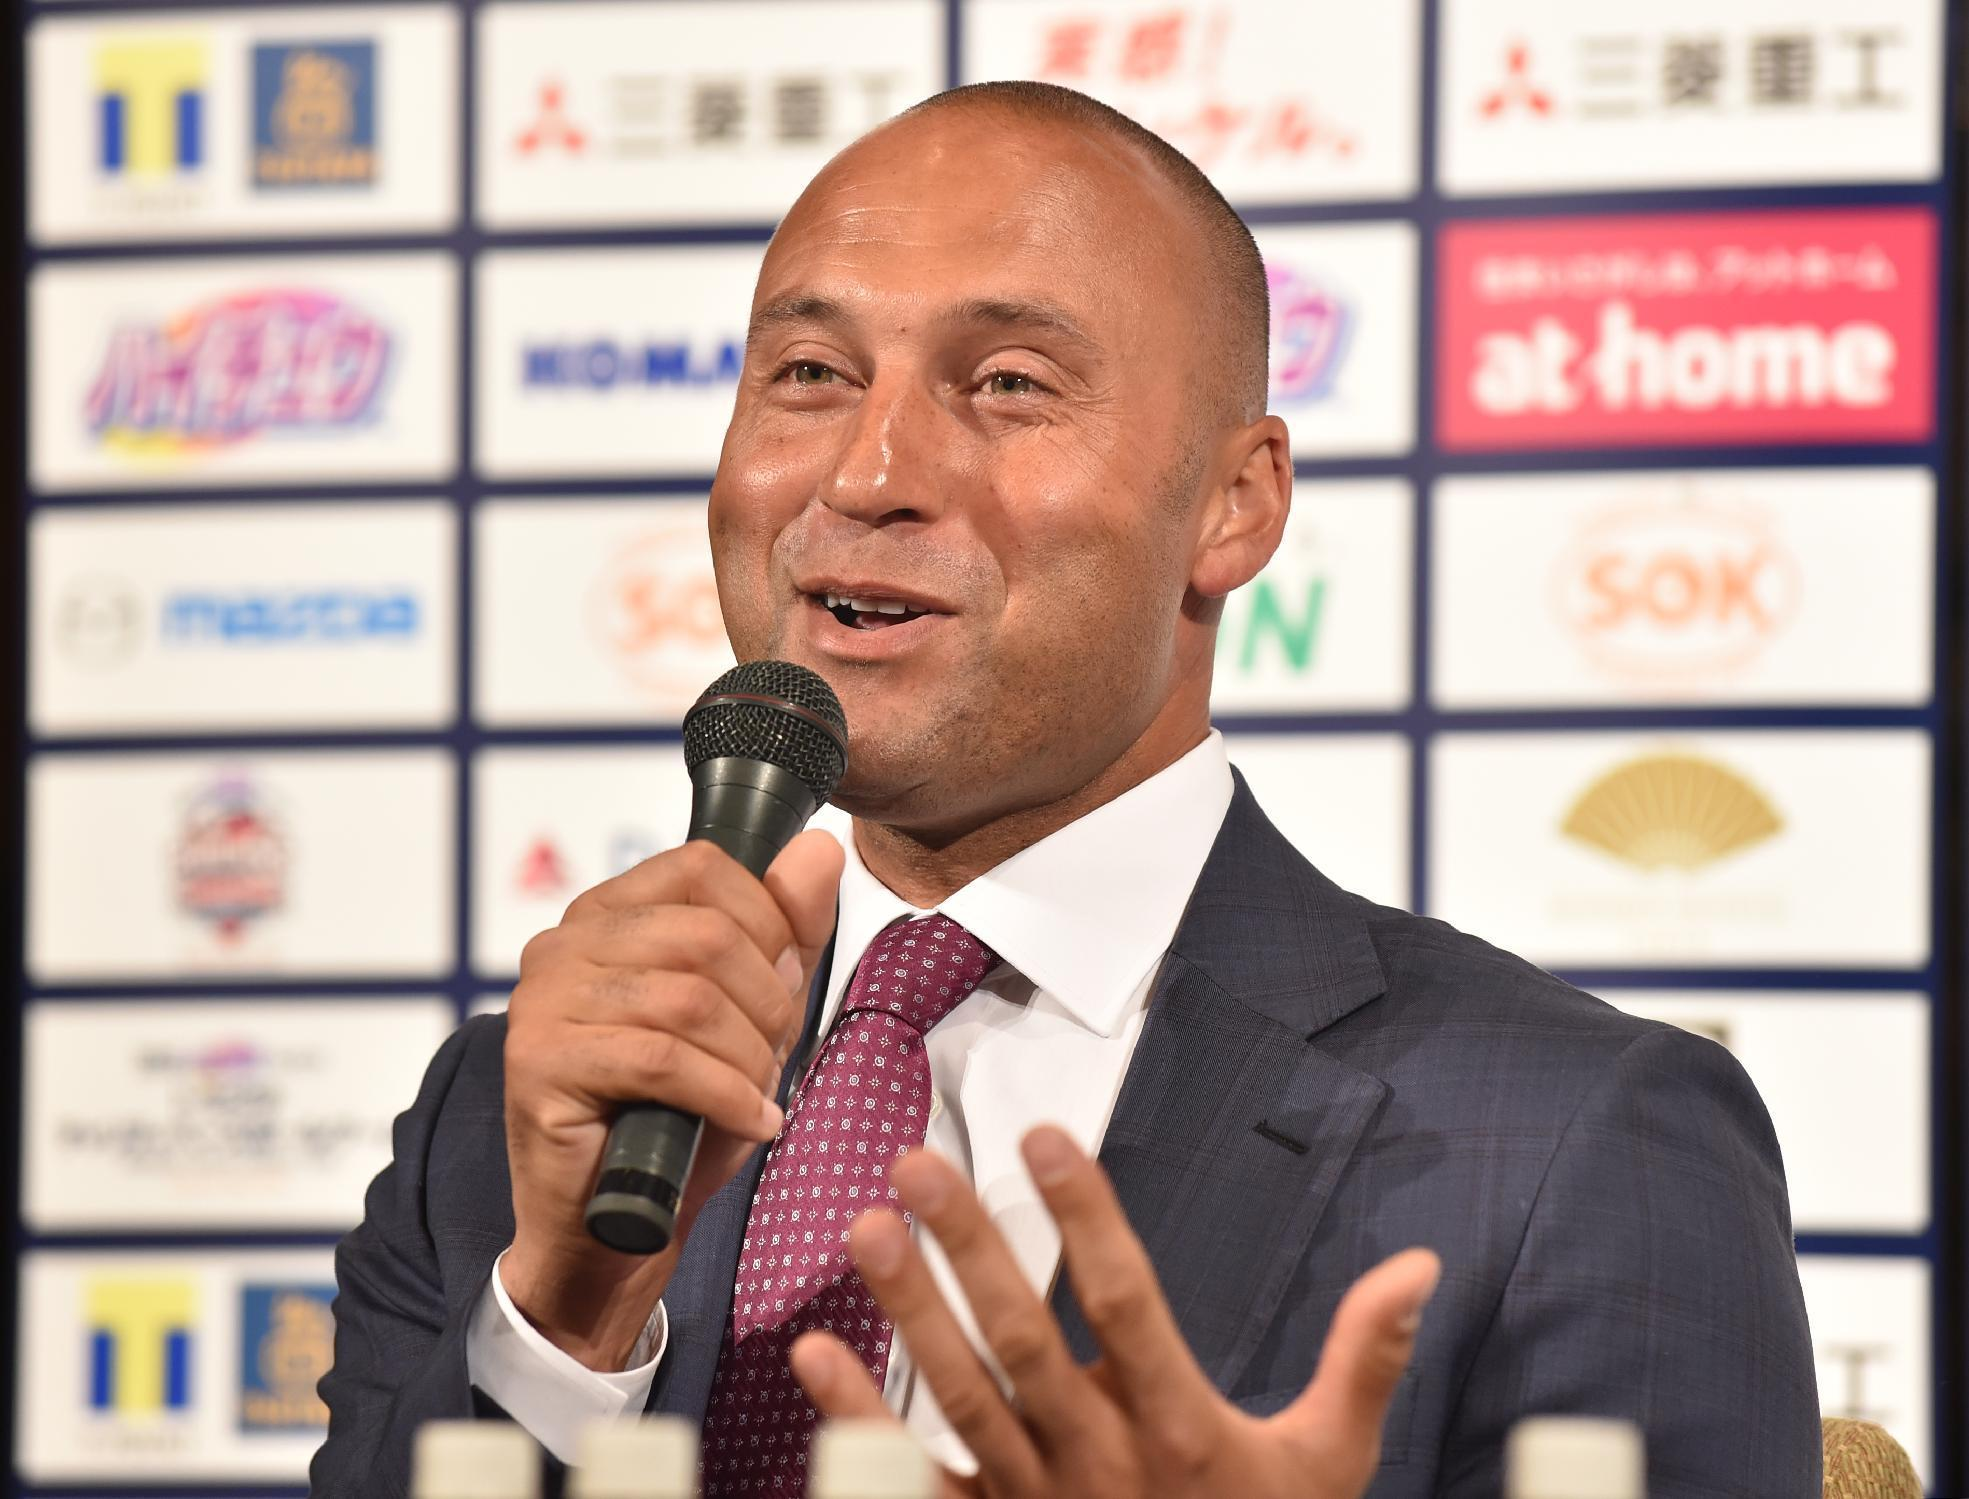 Baseball star Derek Jeter looking to add restaurateur to resume